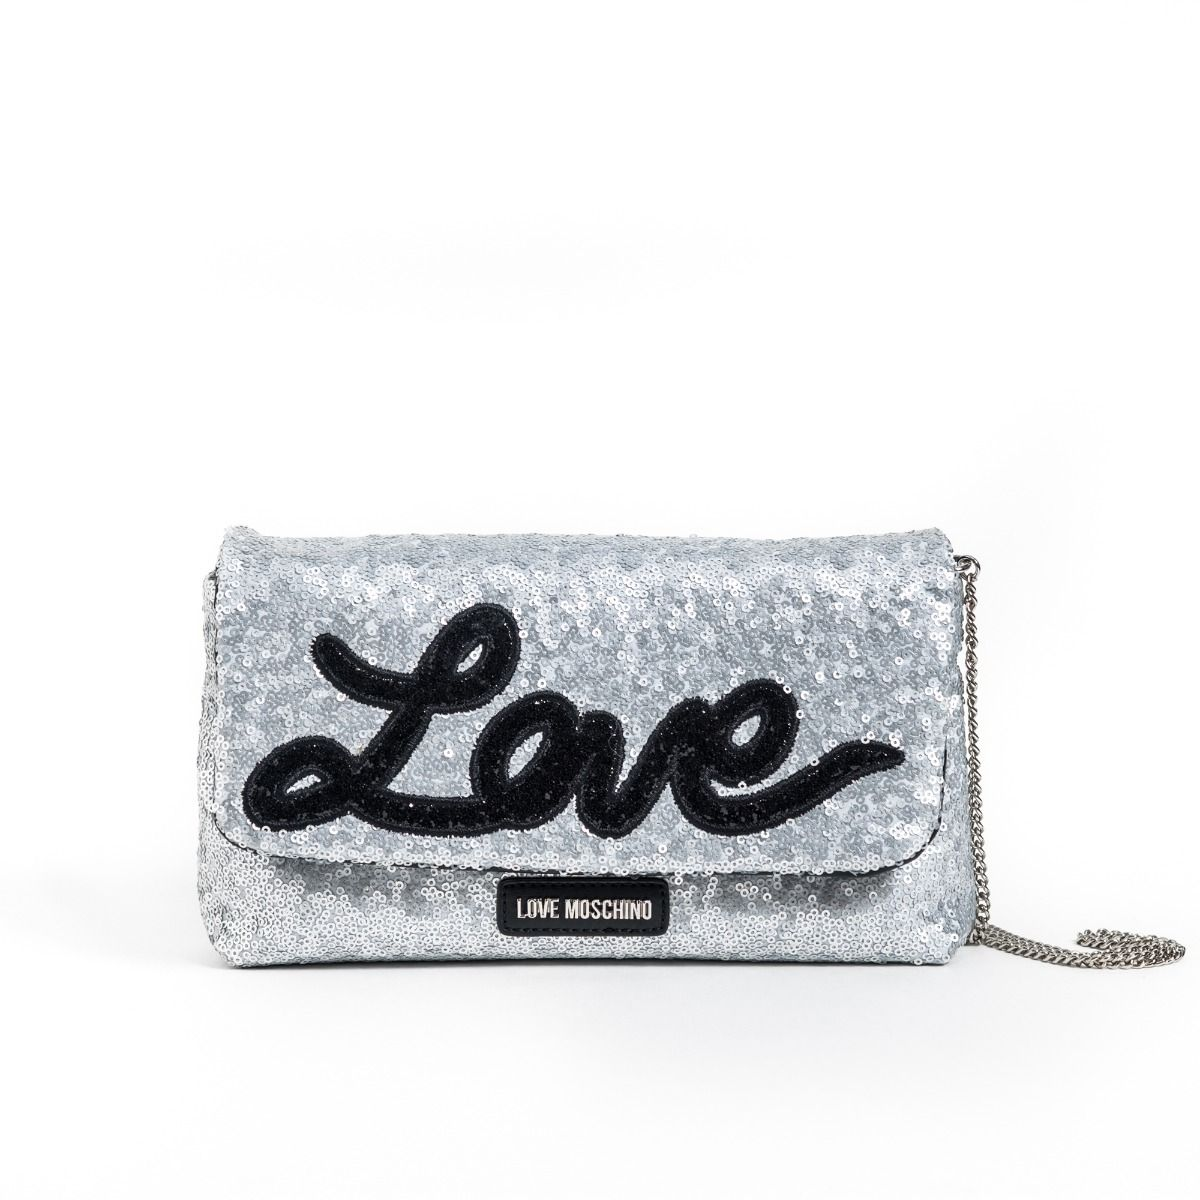 Valentine's Day Gifts for that Special Someone, Valentine's gifts for her, love Moschino Love sequin clutch